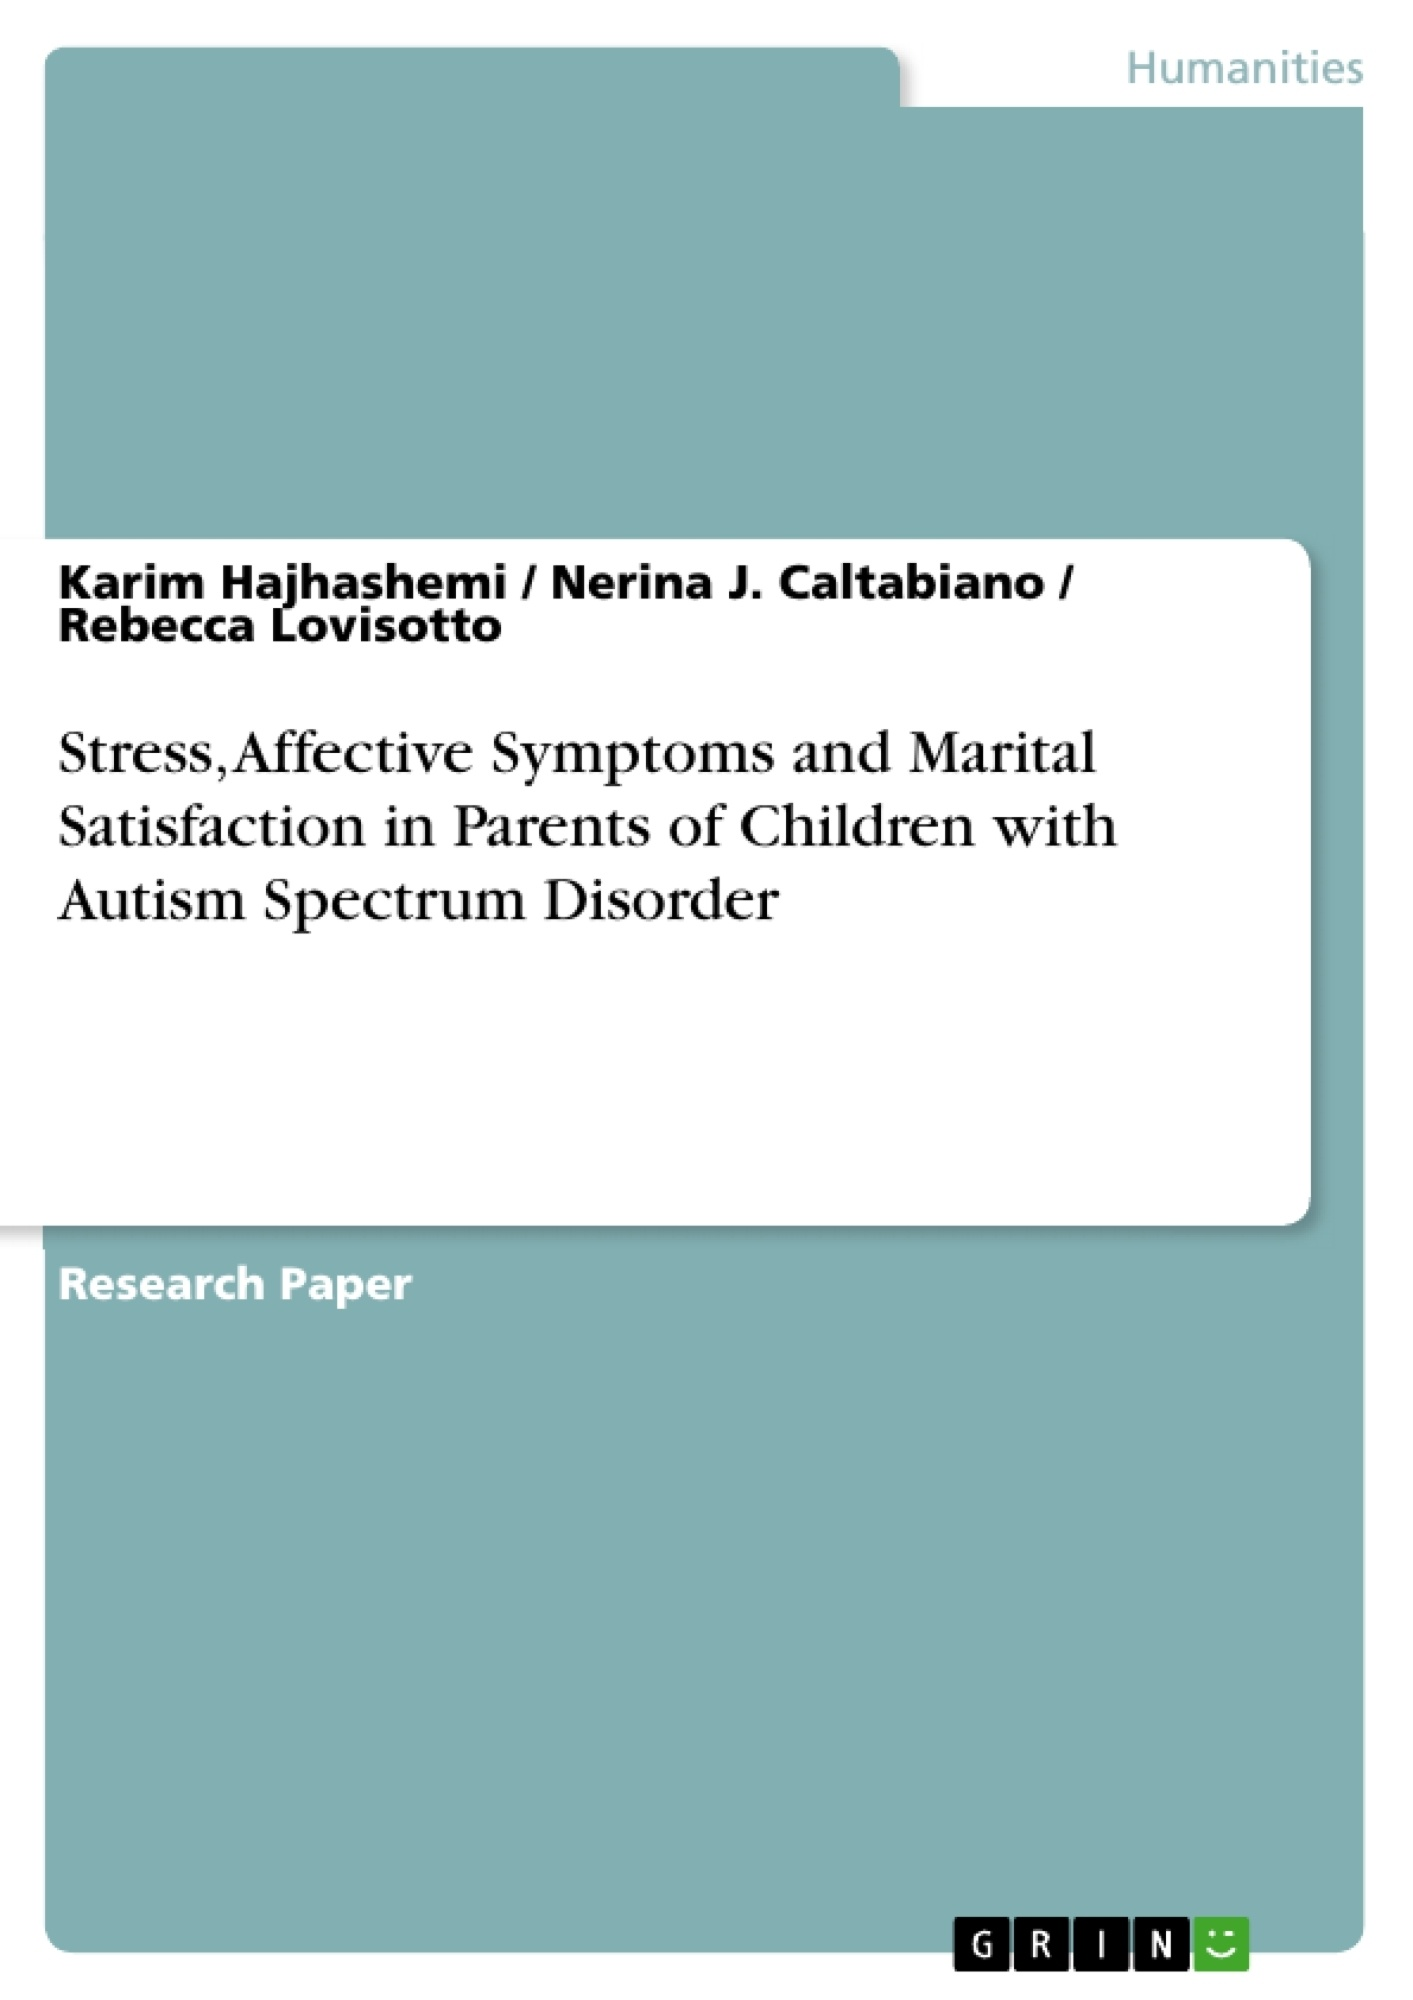 Title: Stress, Affective Symptoms and Marital Satisfaction in Parents of Children with Autism Spectrum Disorder